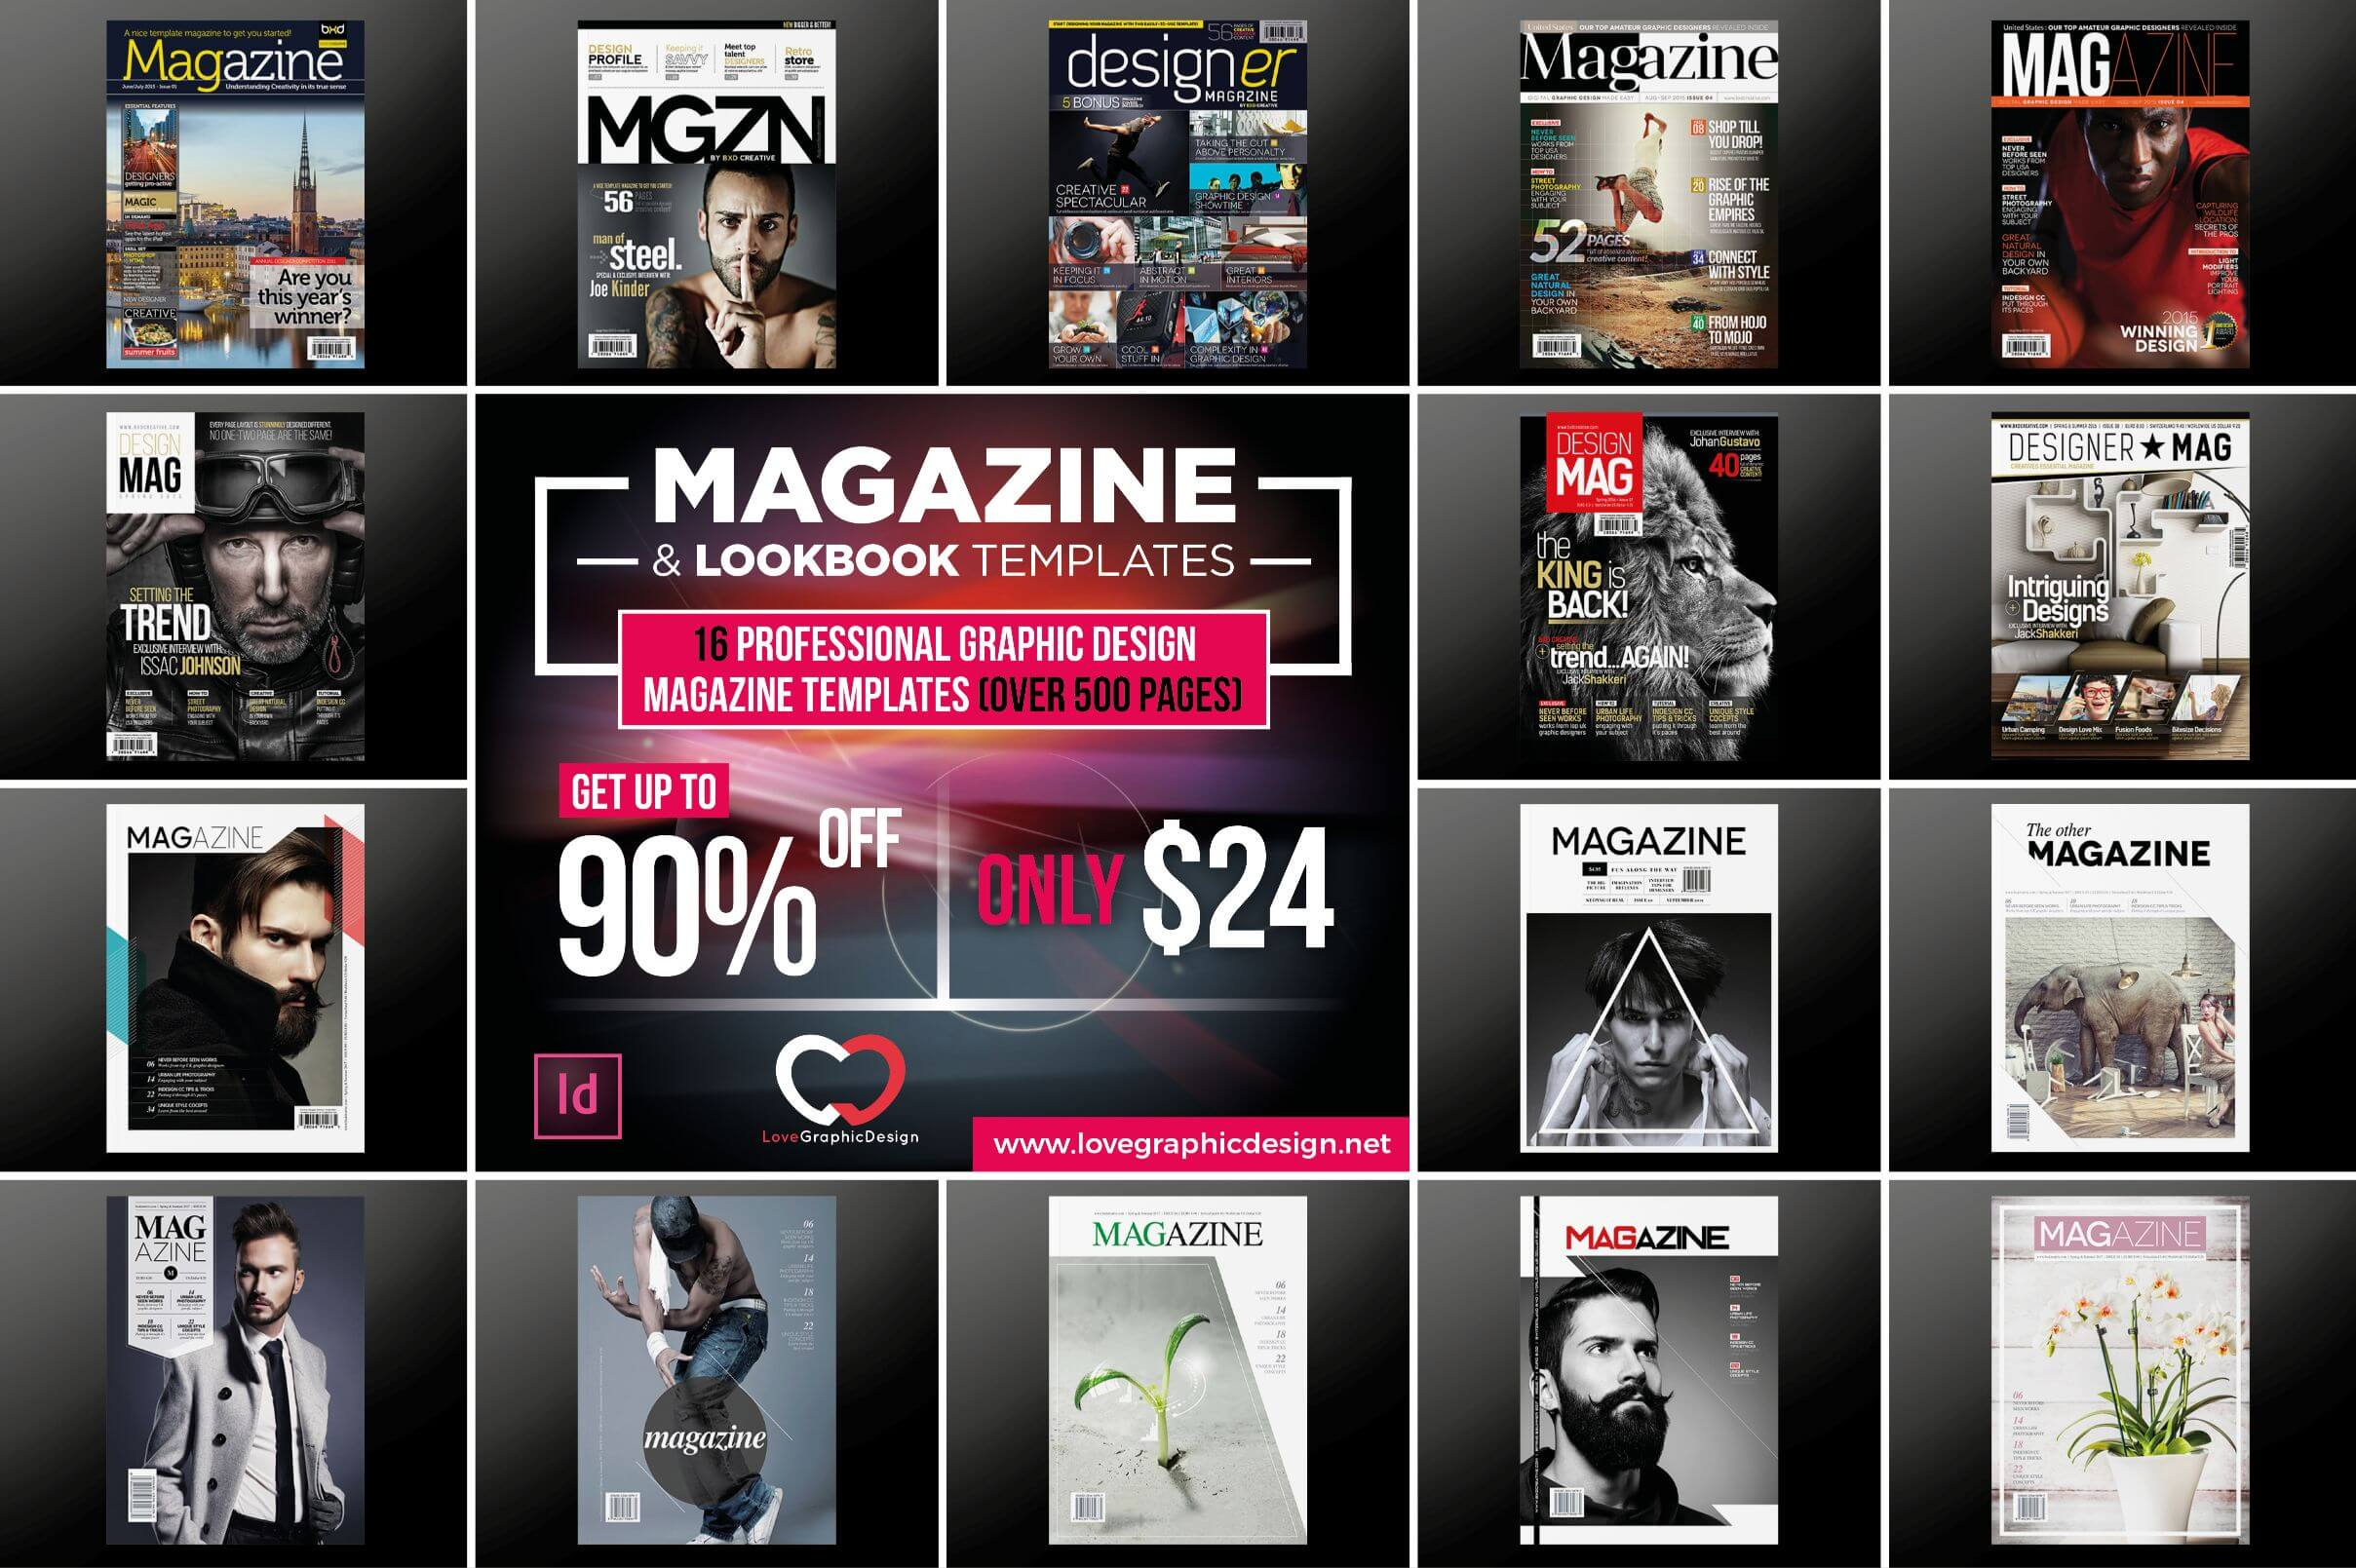 16 Professional Graphic Design Magazine Templates (over 500 pages) – only $24